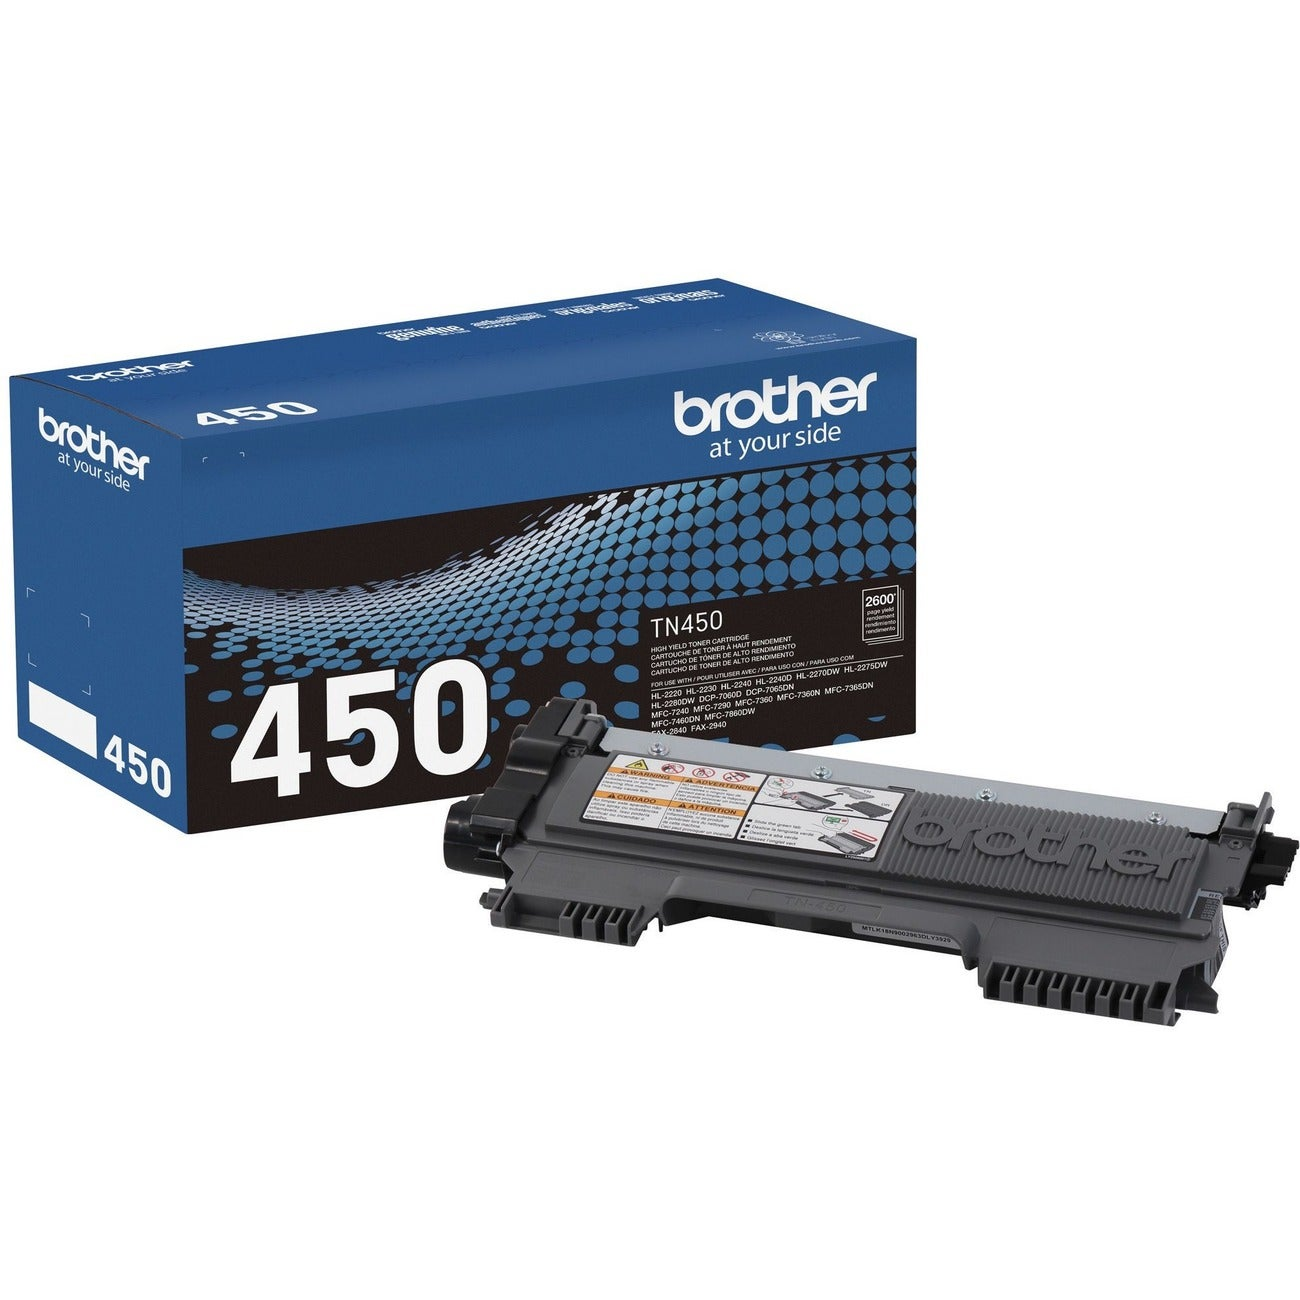 Brother TN450 Toner Cartridge - Black